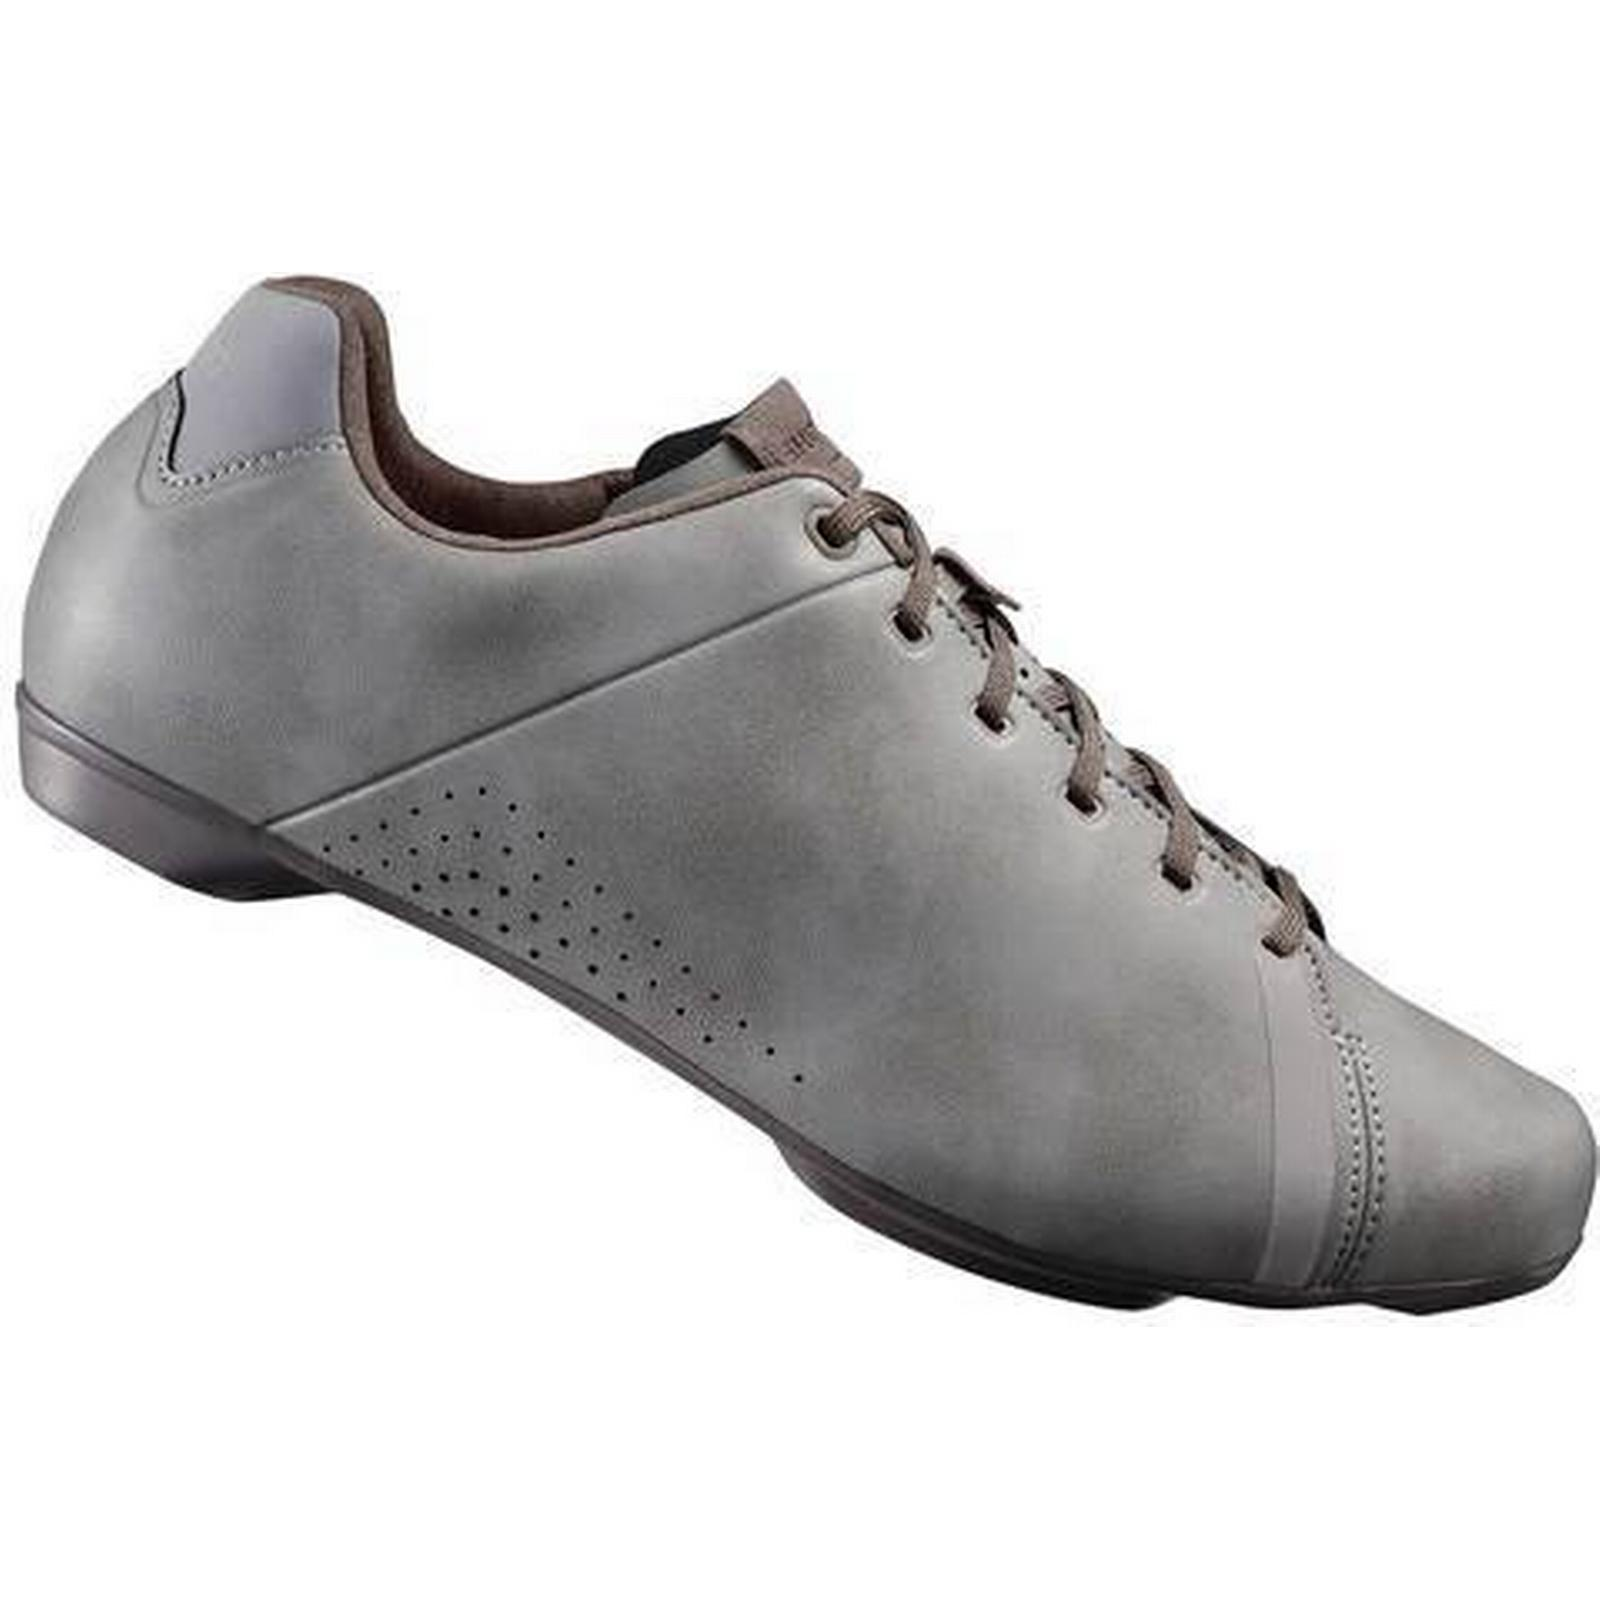 Shimano Shoes RT400 SPD Shoes Shimano | Grey - 43 56efc8